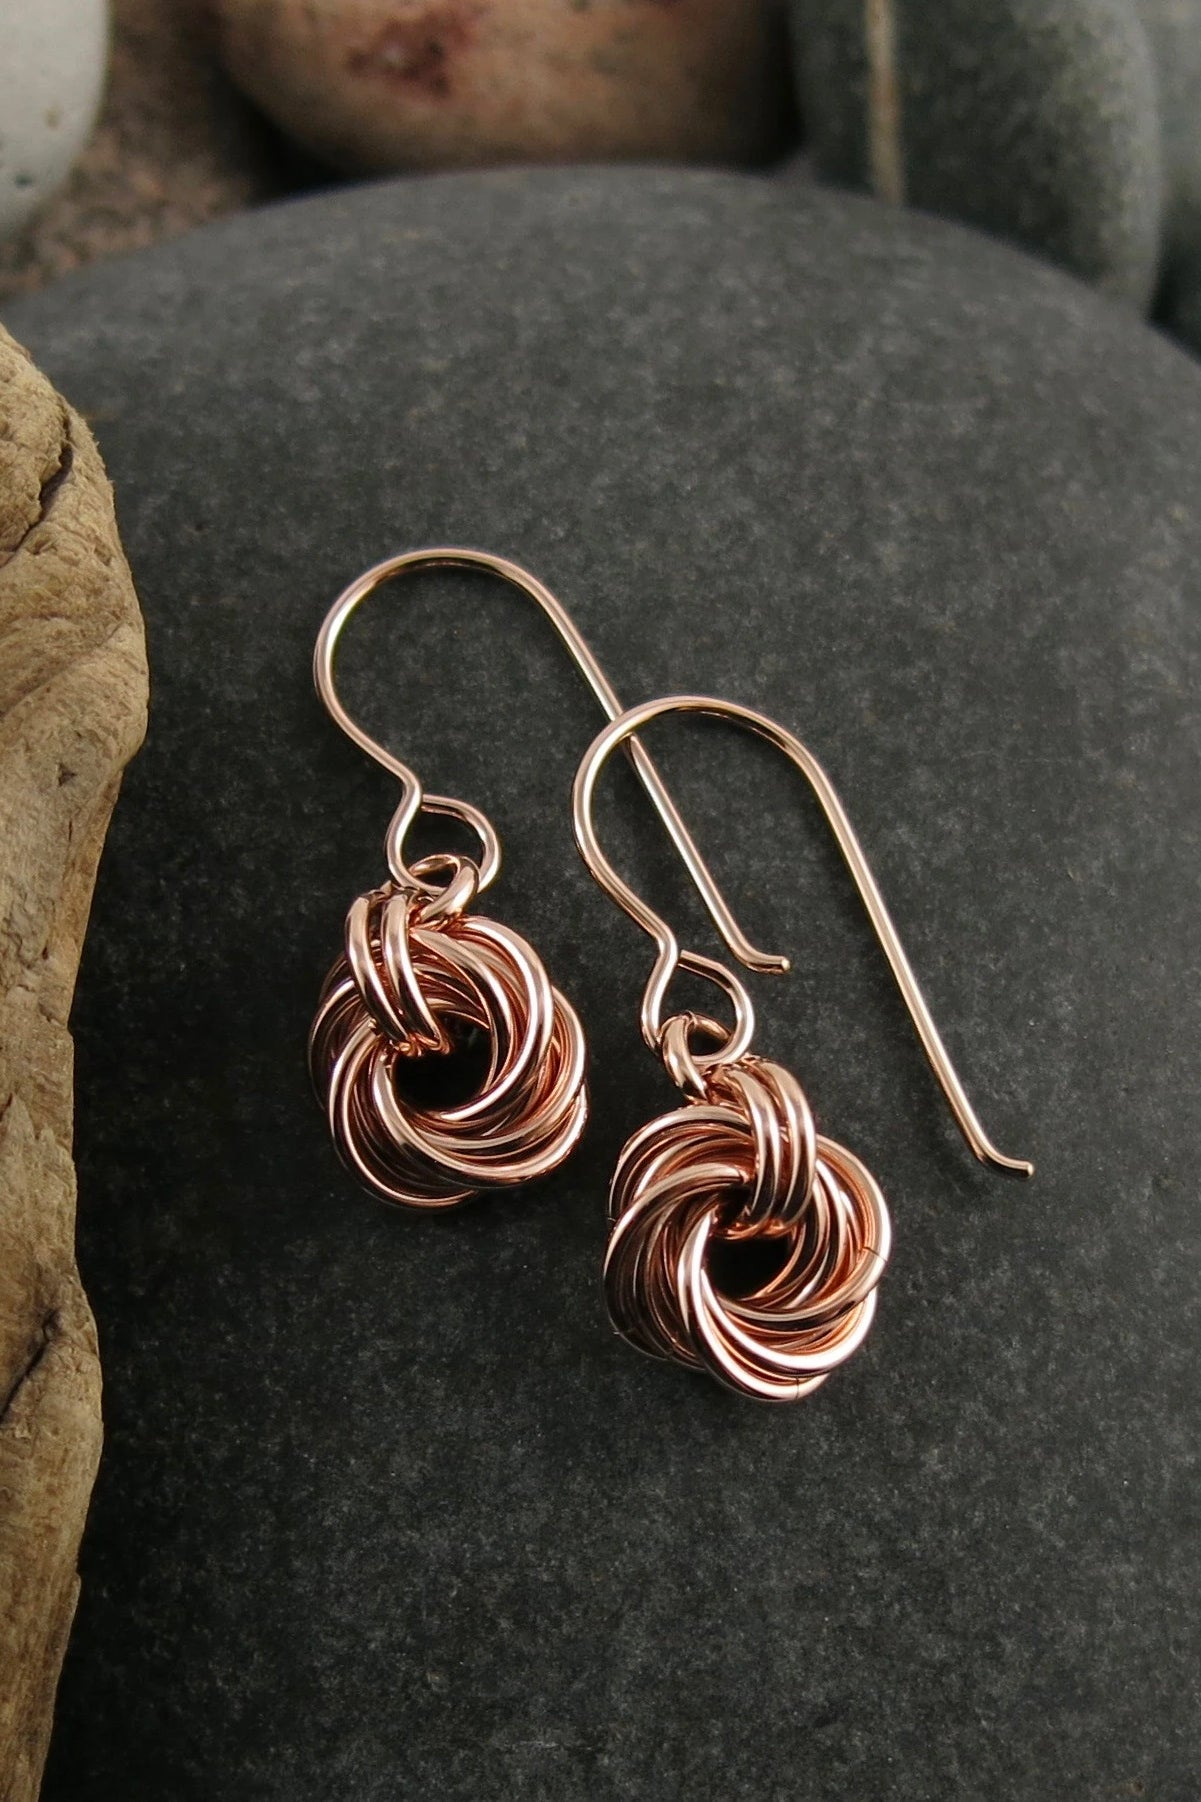 Endless Love Knot Earrings • 14K Rose Gold Fill